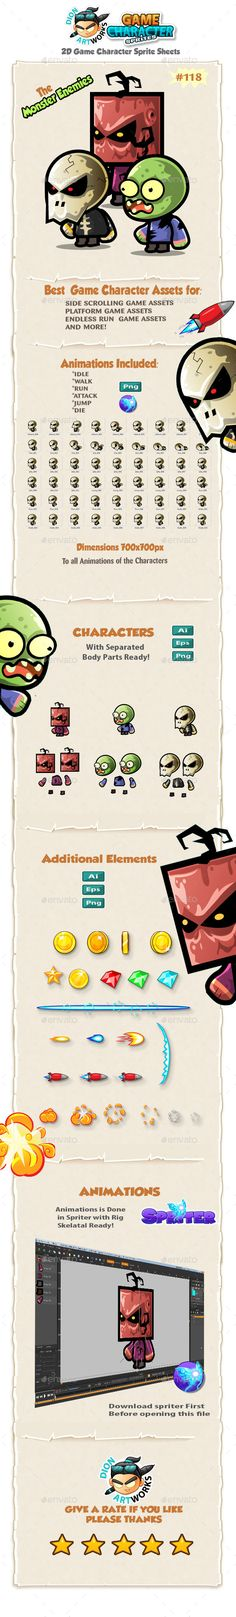 Monster Enemies 2D Game Character Sprites 118 — Vector EPS #iphone #rpg • Available here → https://graphicriver.net/item/monster-enemies-2d-game-character-sprites-118/13242439?ref=pxcr